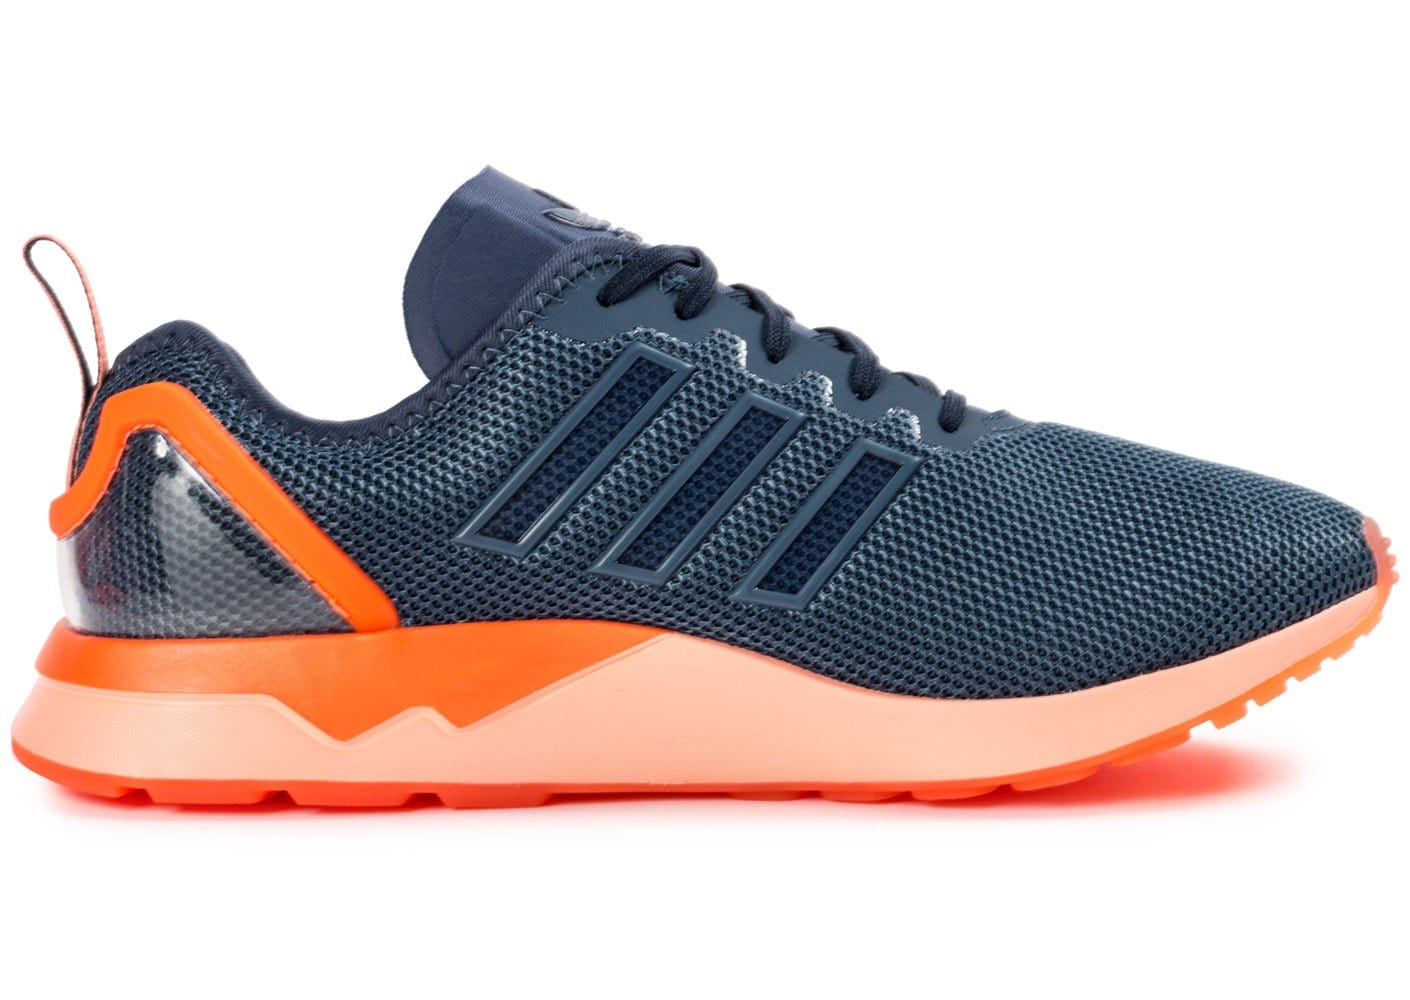 adidas zx flux homme orange